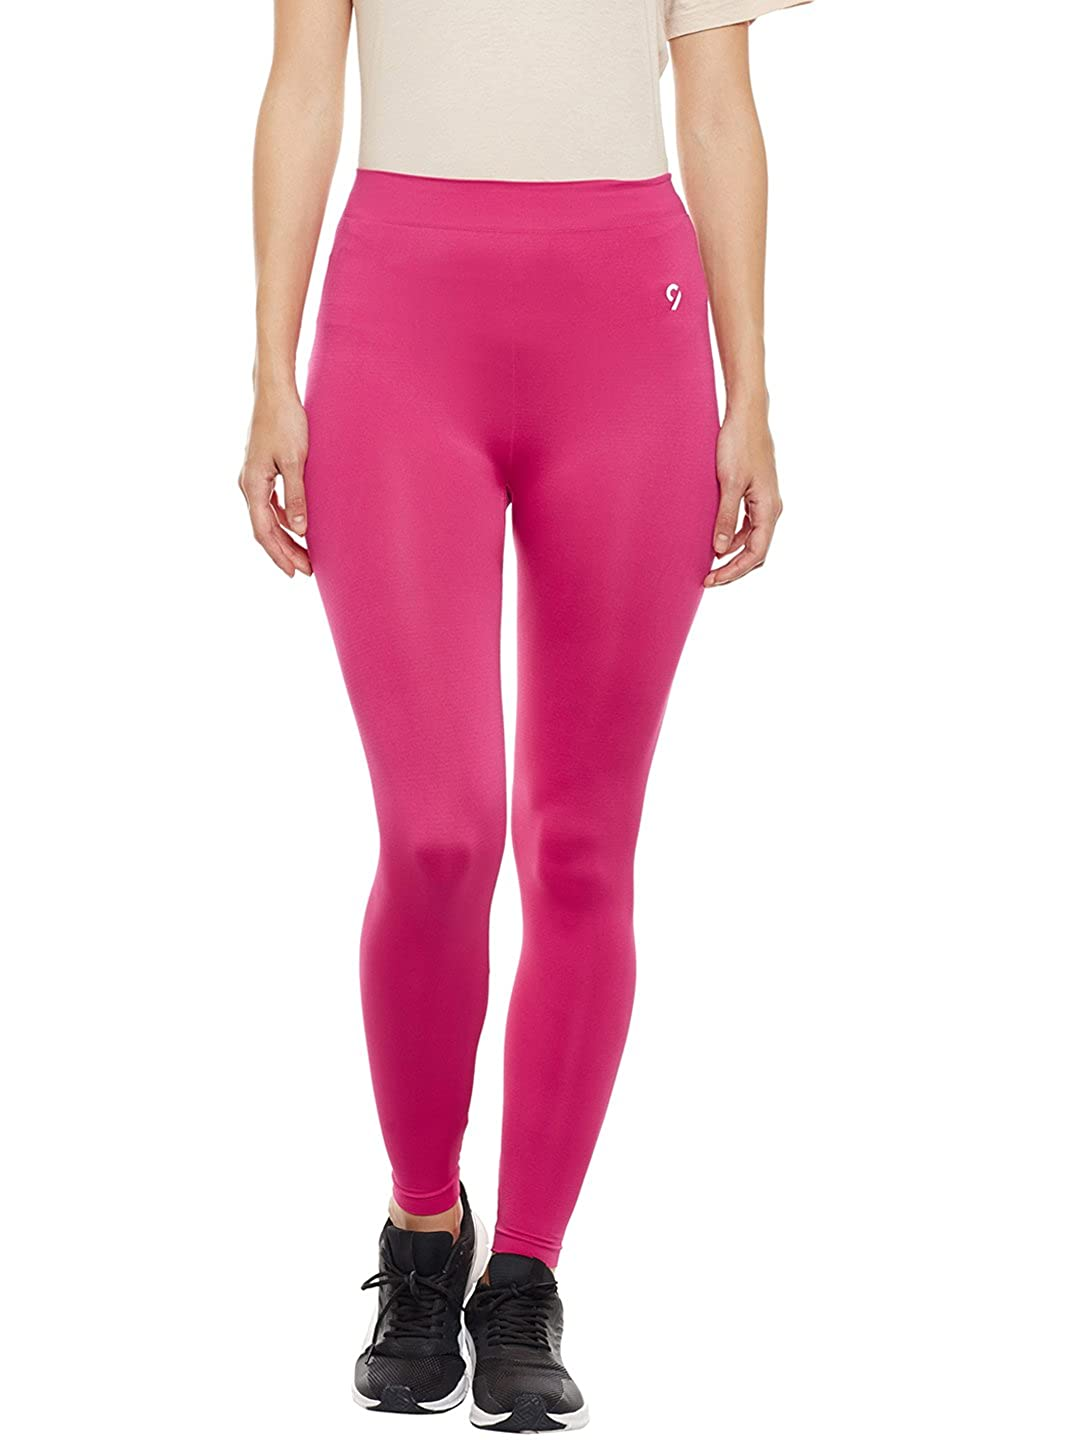 356c570651289e C9 Seamless Women's Solid Brown Ankle Length Legging (Pink, XL): Amazon.in:  Clothing & Accessories